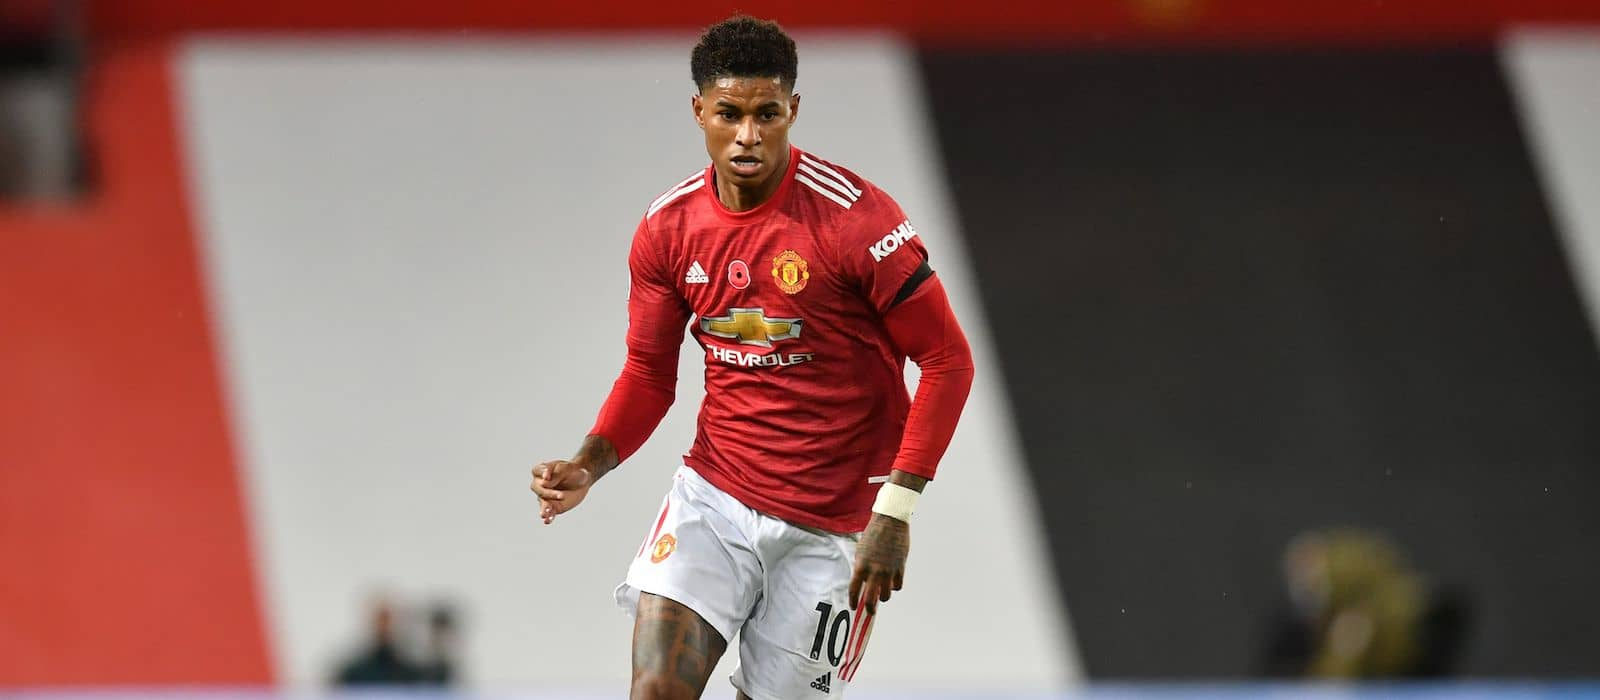 Marcus Rashford Manchester United Players Wallpaper 2020 Marcus Rashford Wows Fans With What He Keeps Under The